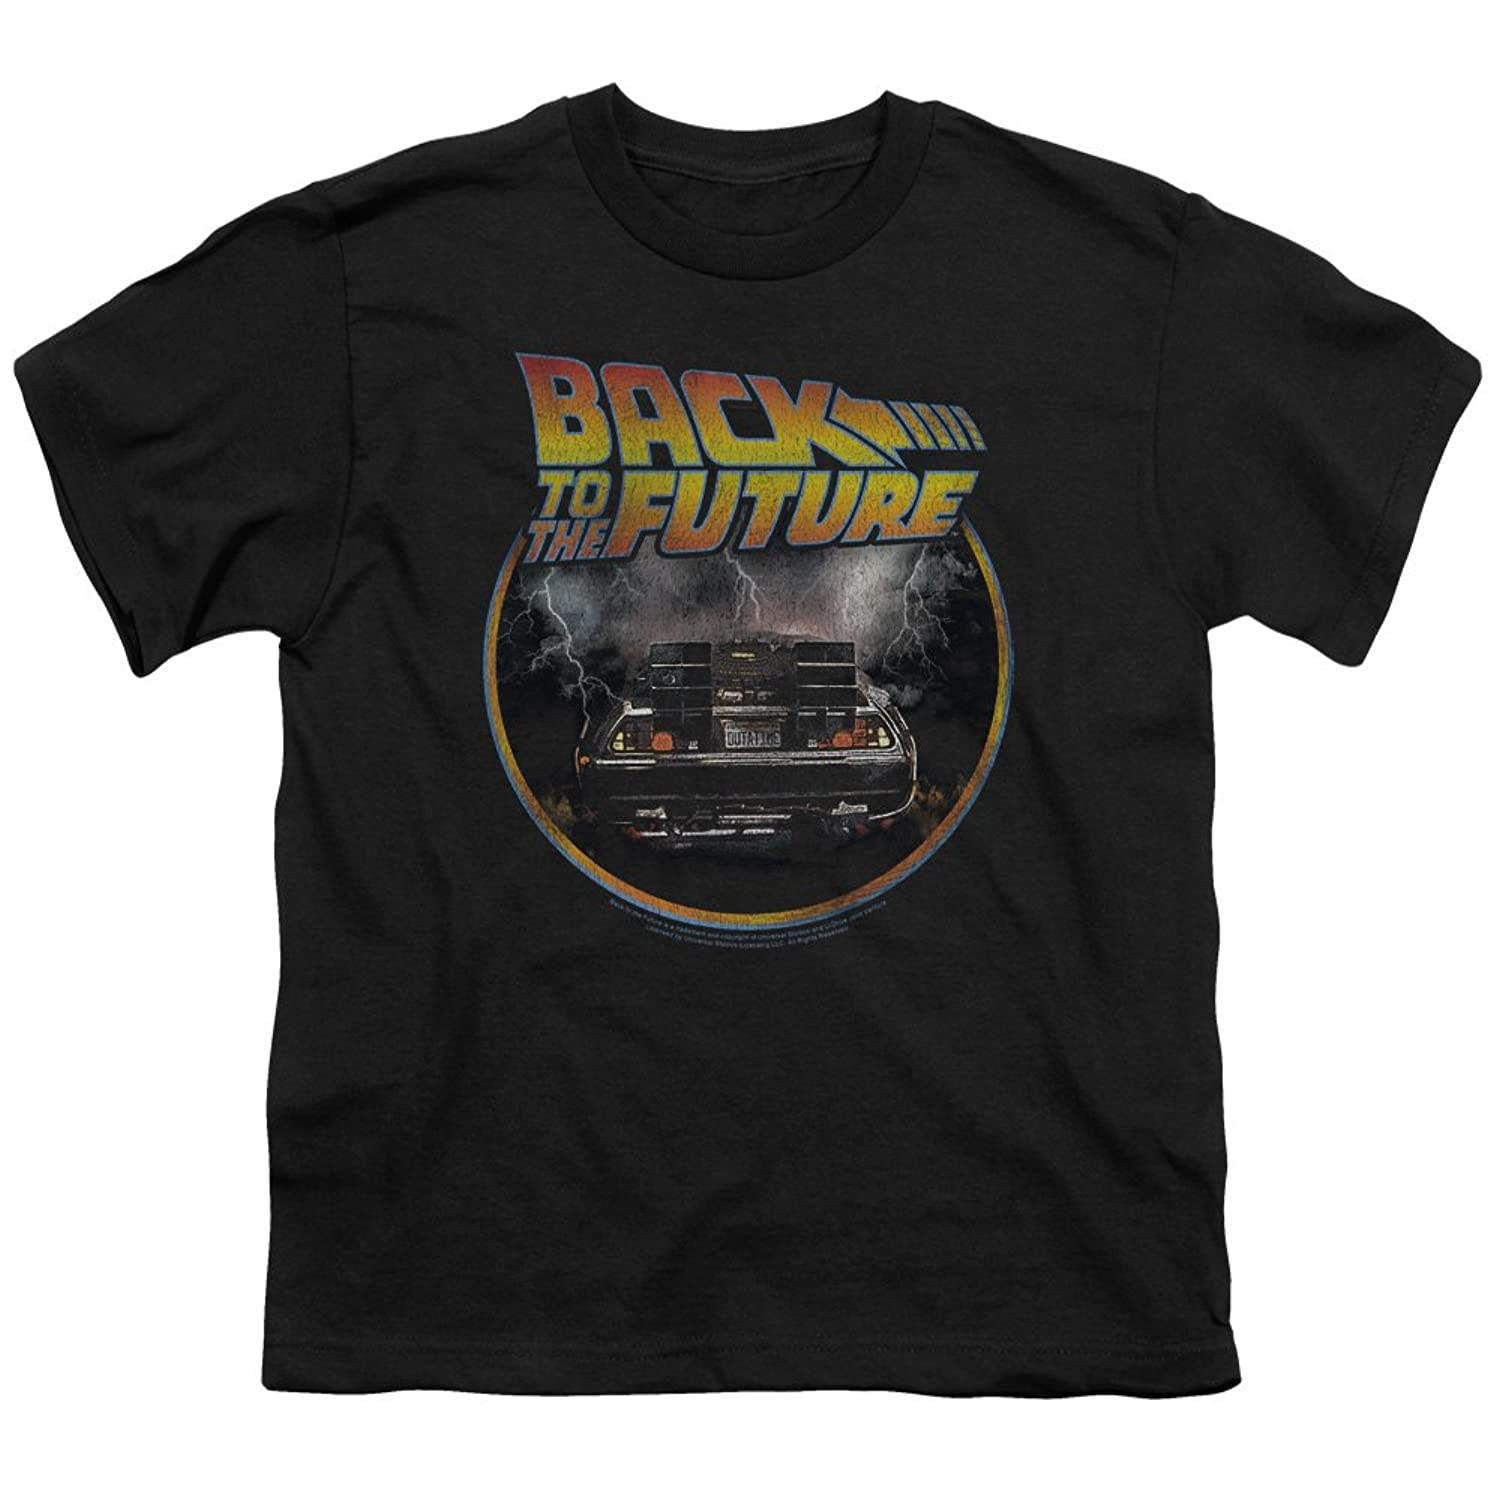 Back To The Future - Youth Back T-Shirt, Medium, Black